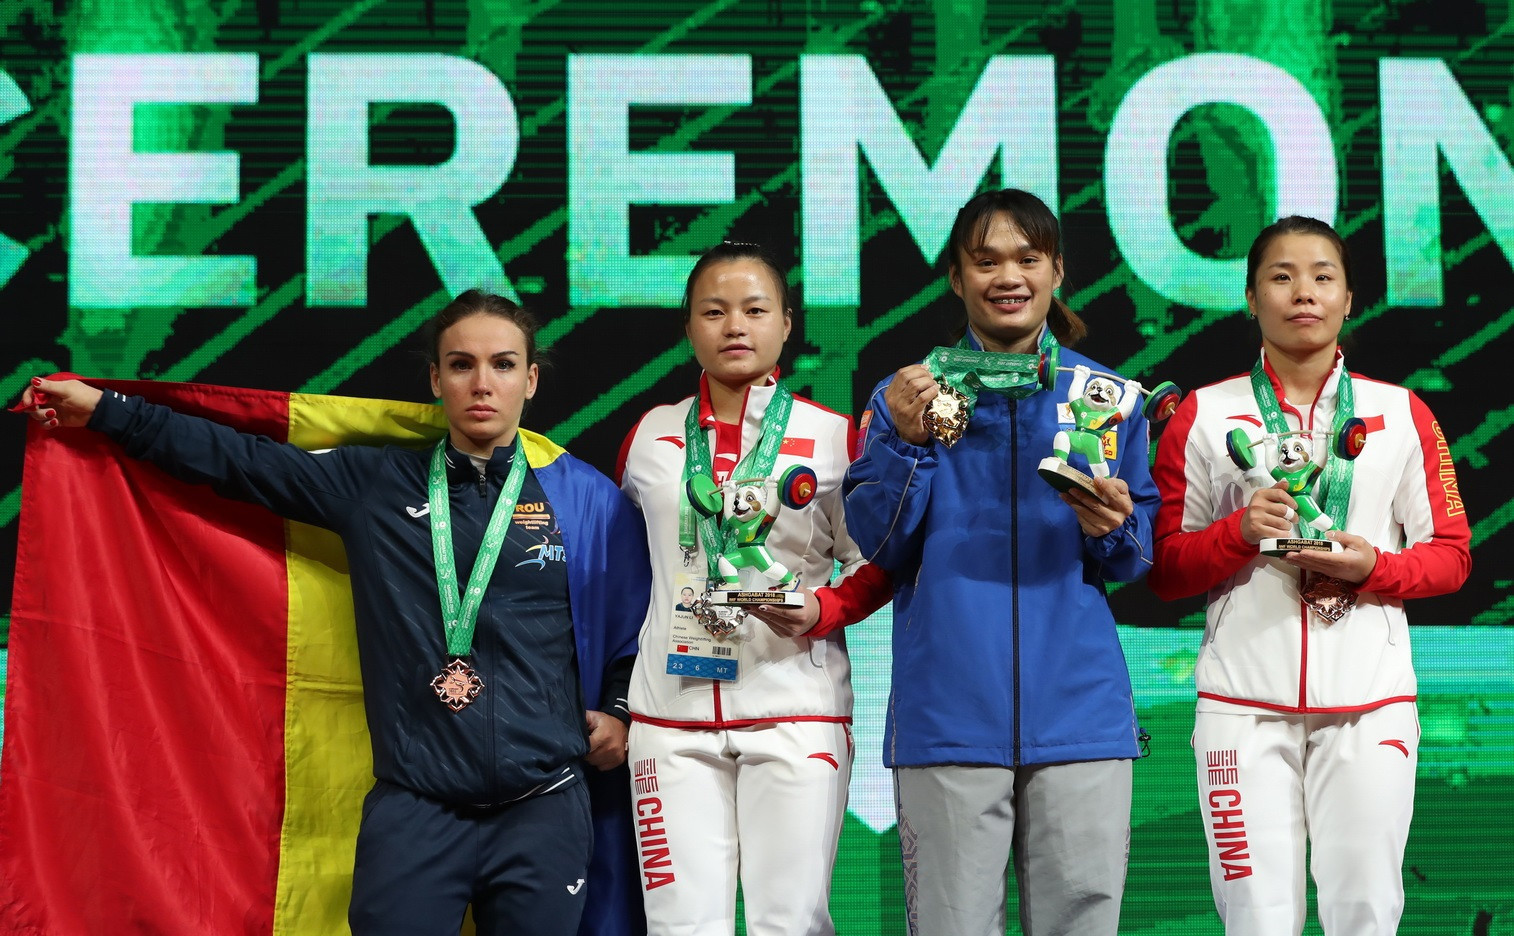 Thailand's Sukanya Srisurat achieved world standards in the snatch, clean and jerk and total to secure a hat-trick of women's 55 kilograms gold medals on day three of the 2018 IWF World Championships in Ashgabat ©IWF